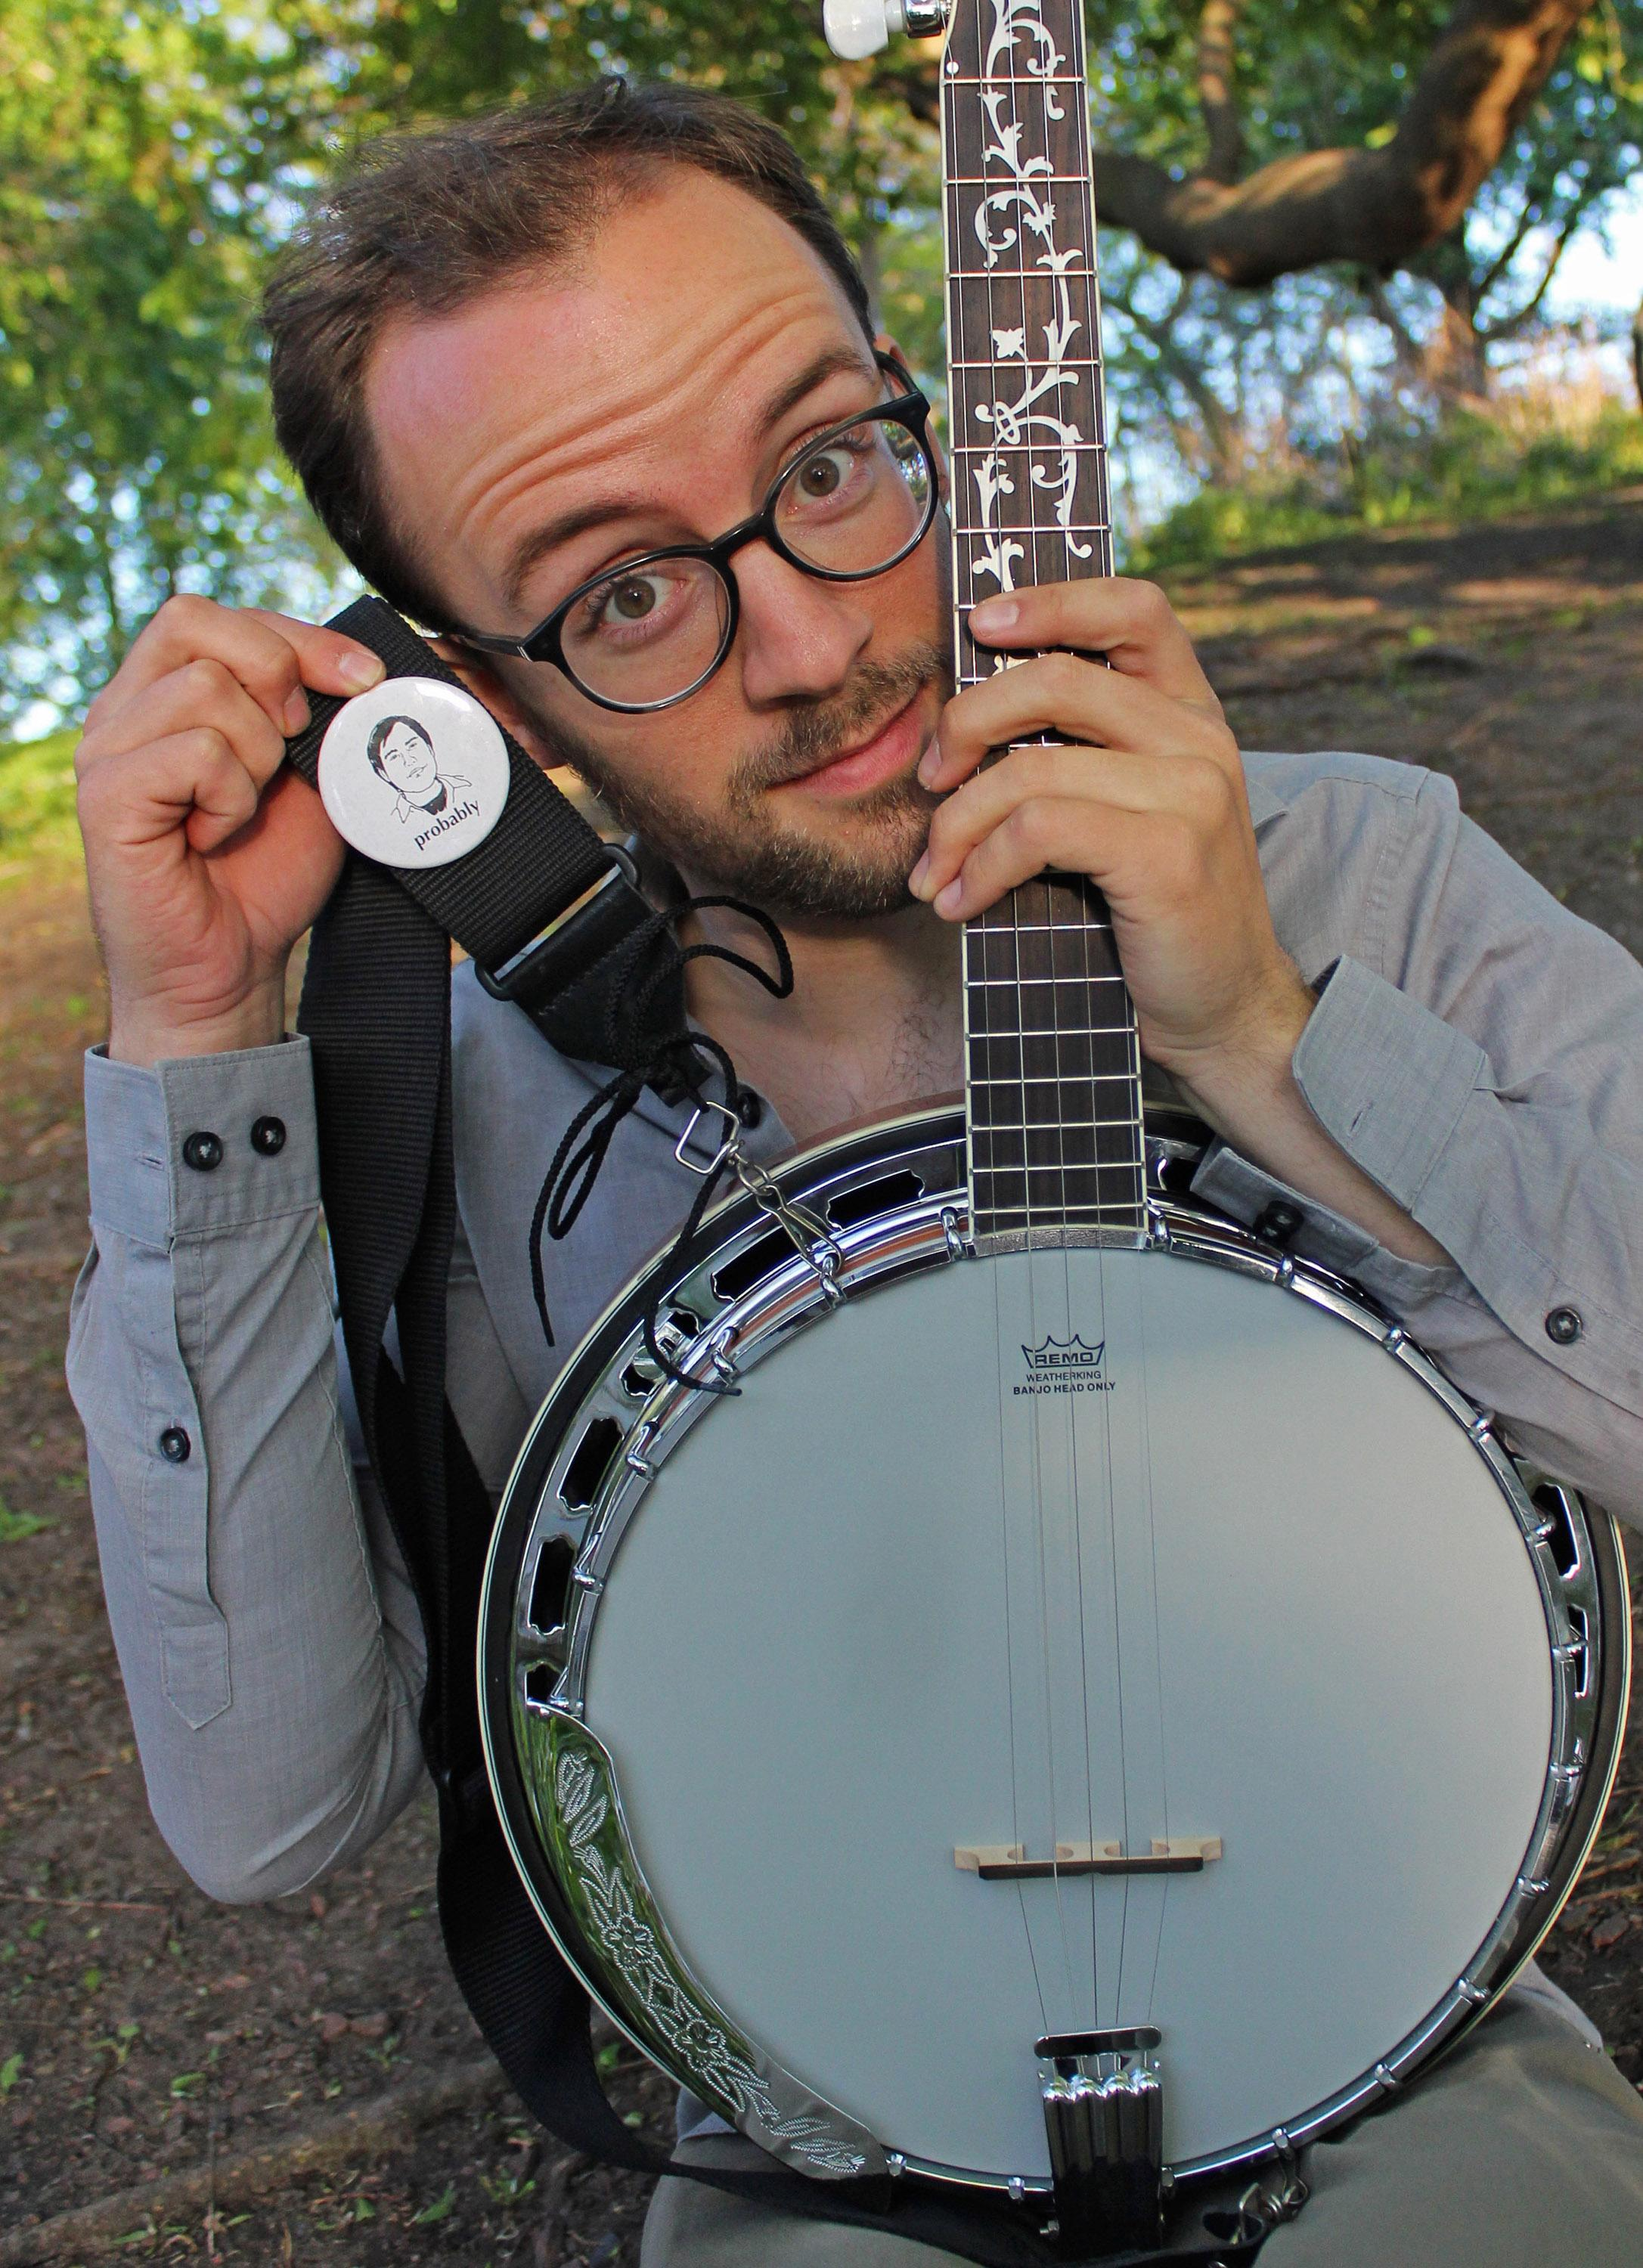 """A young man with round glasses and facial hair holds the neck of a bango near his face with one hand while holding a white badge with an image of a face and the word """"Probably"""" in an outdoor wooded setting."""